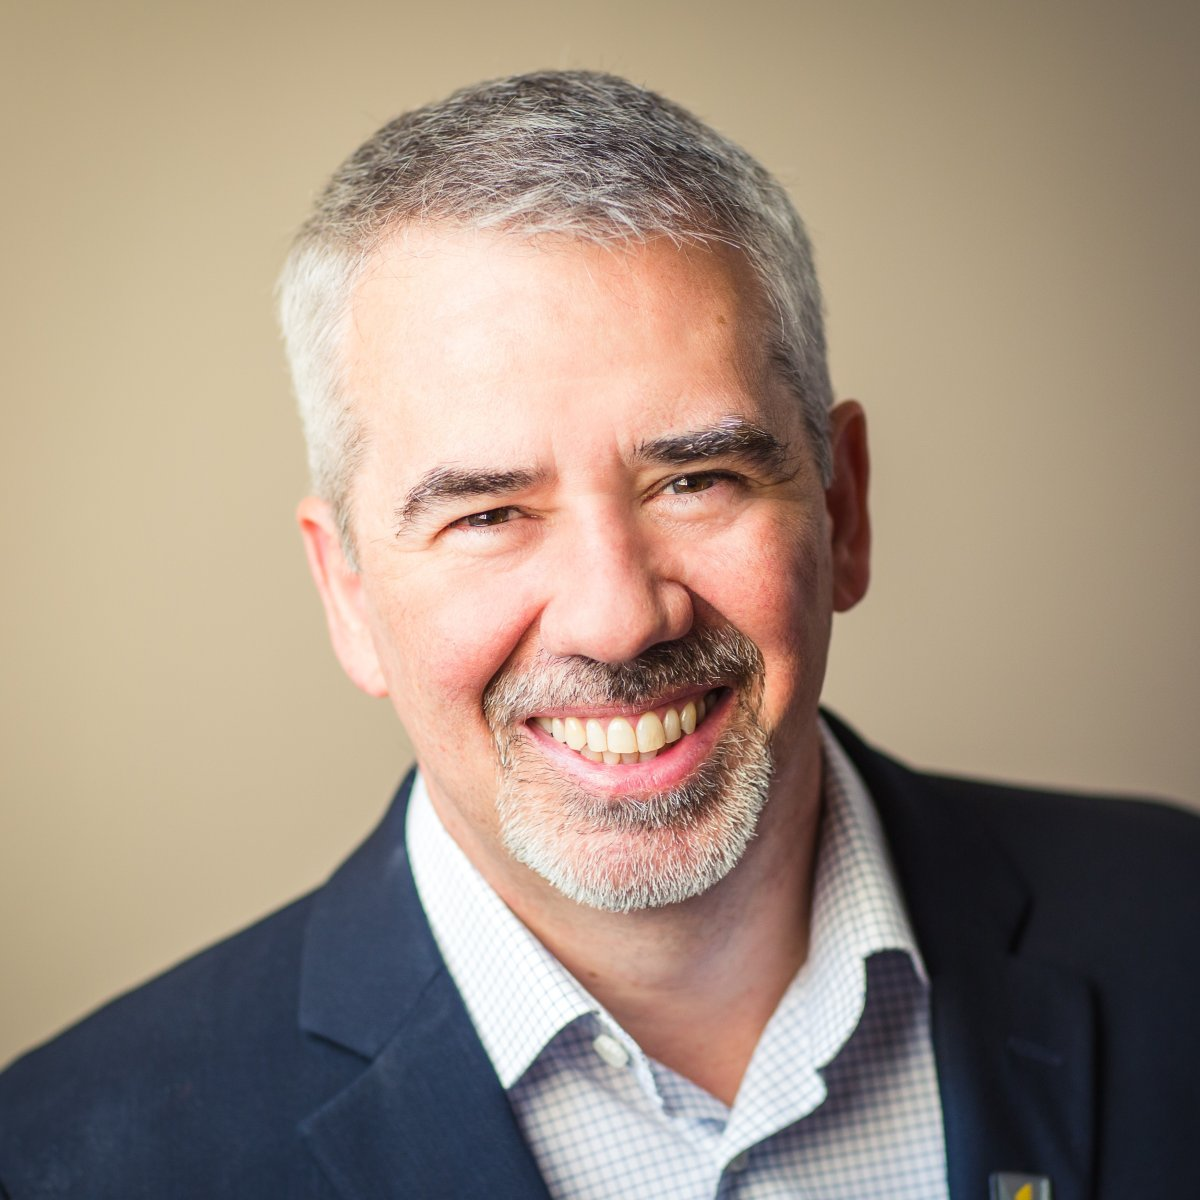 Edmundston, New Brunswick Mayor Cyrille Simard is shown in a handout photo. Simard is rolling out the welcome mat for Quebecers upset with their province's move to restrict some people from wearing religious symbols.